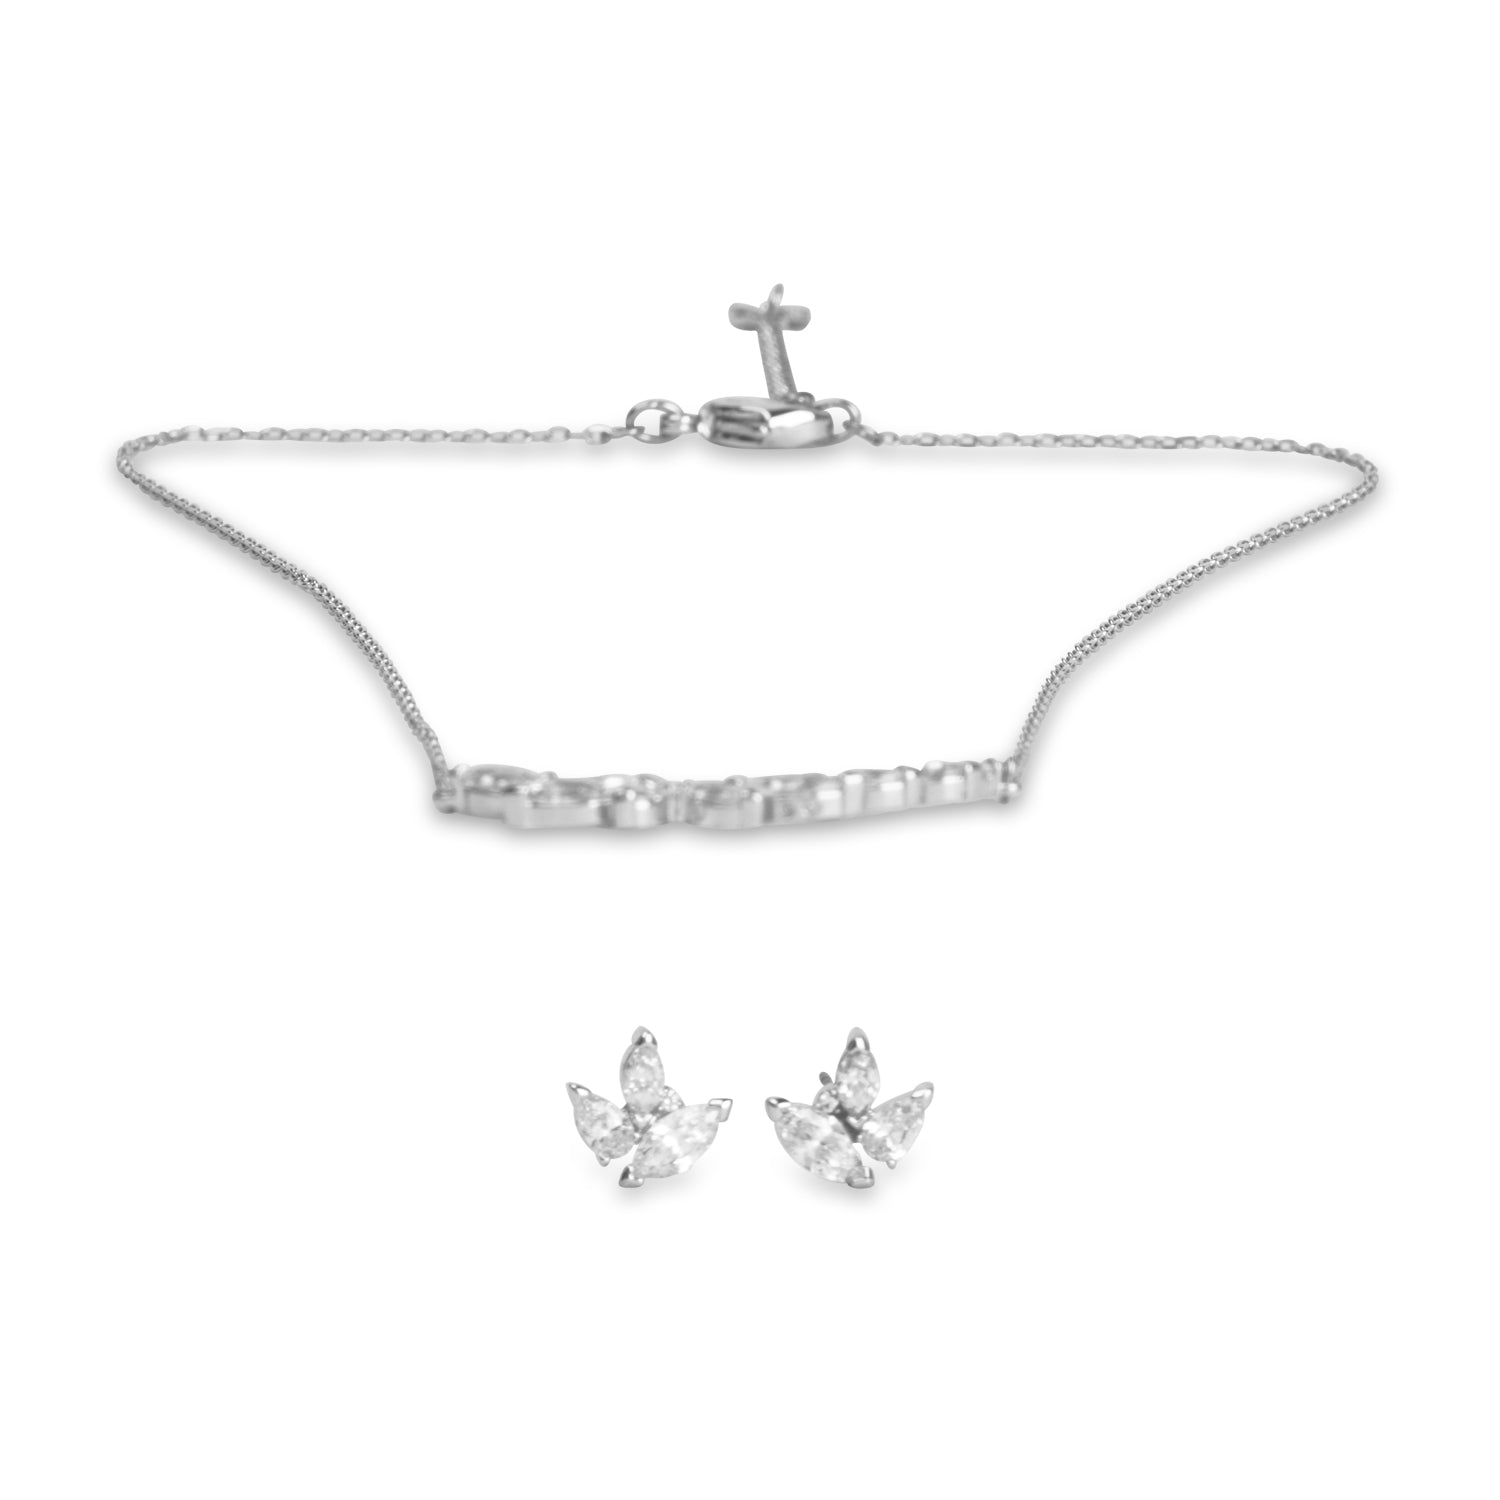 swarovski louison set | shop online at galleriadilux.com